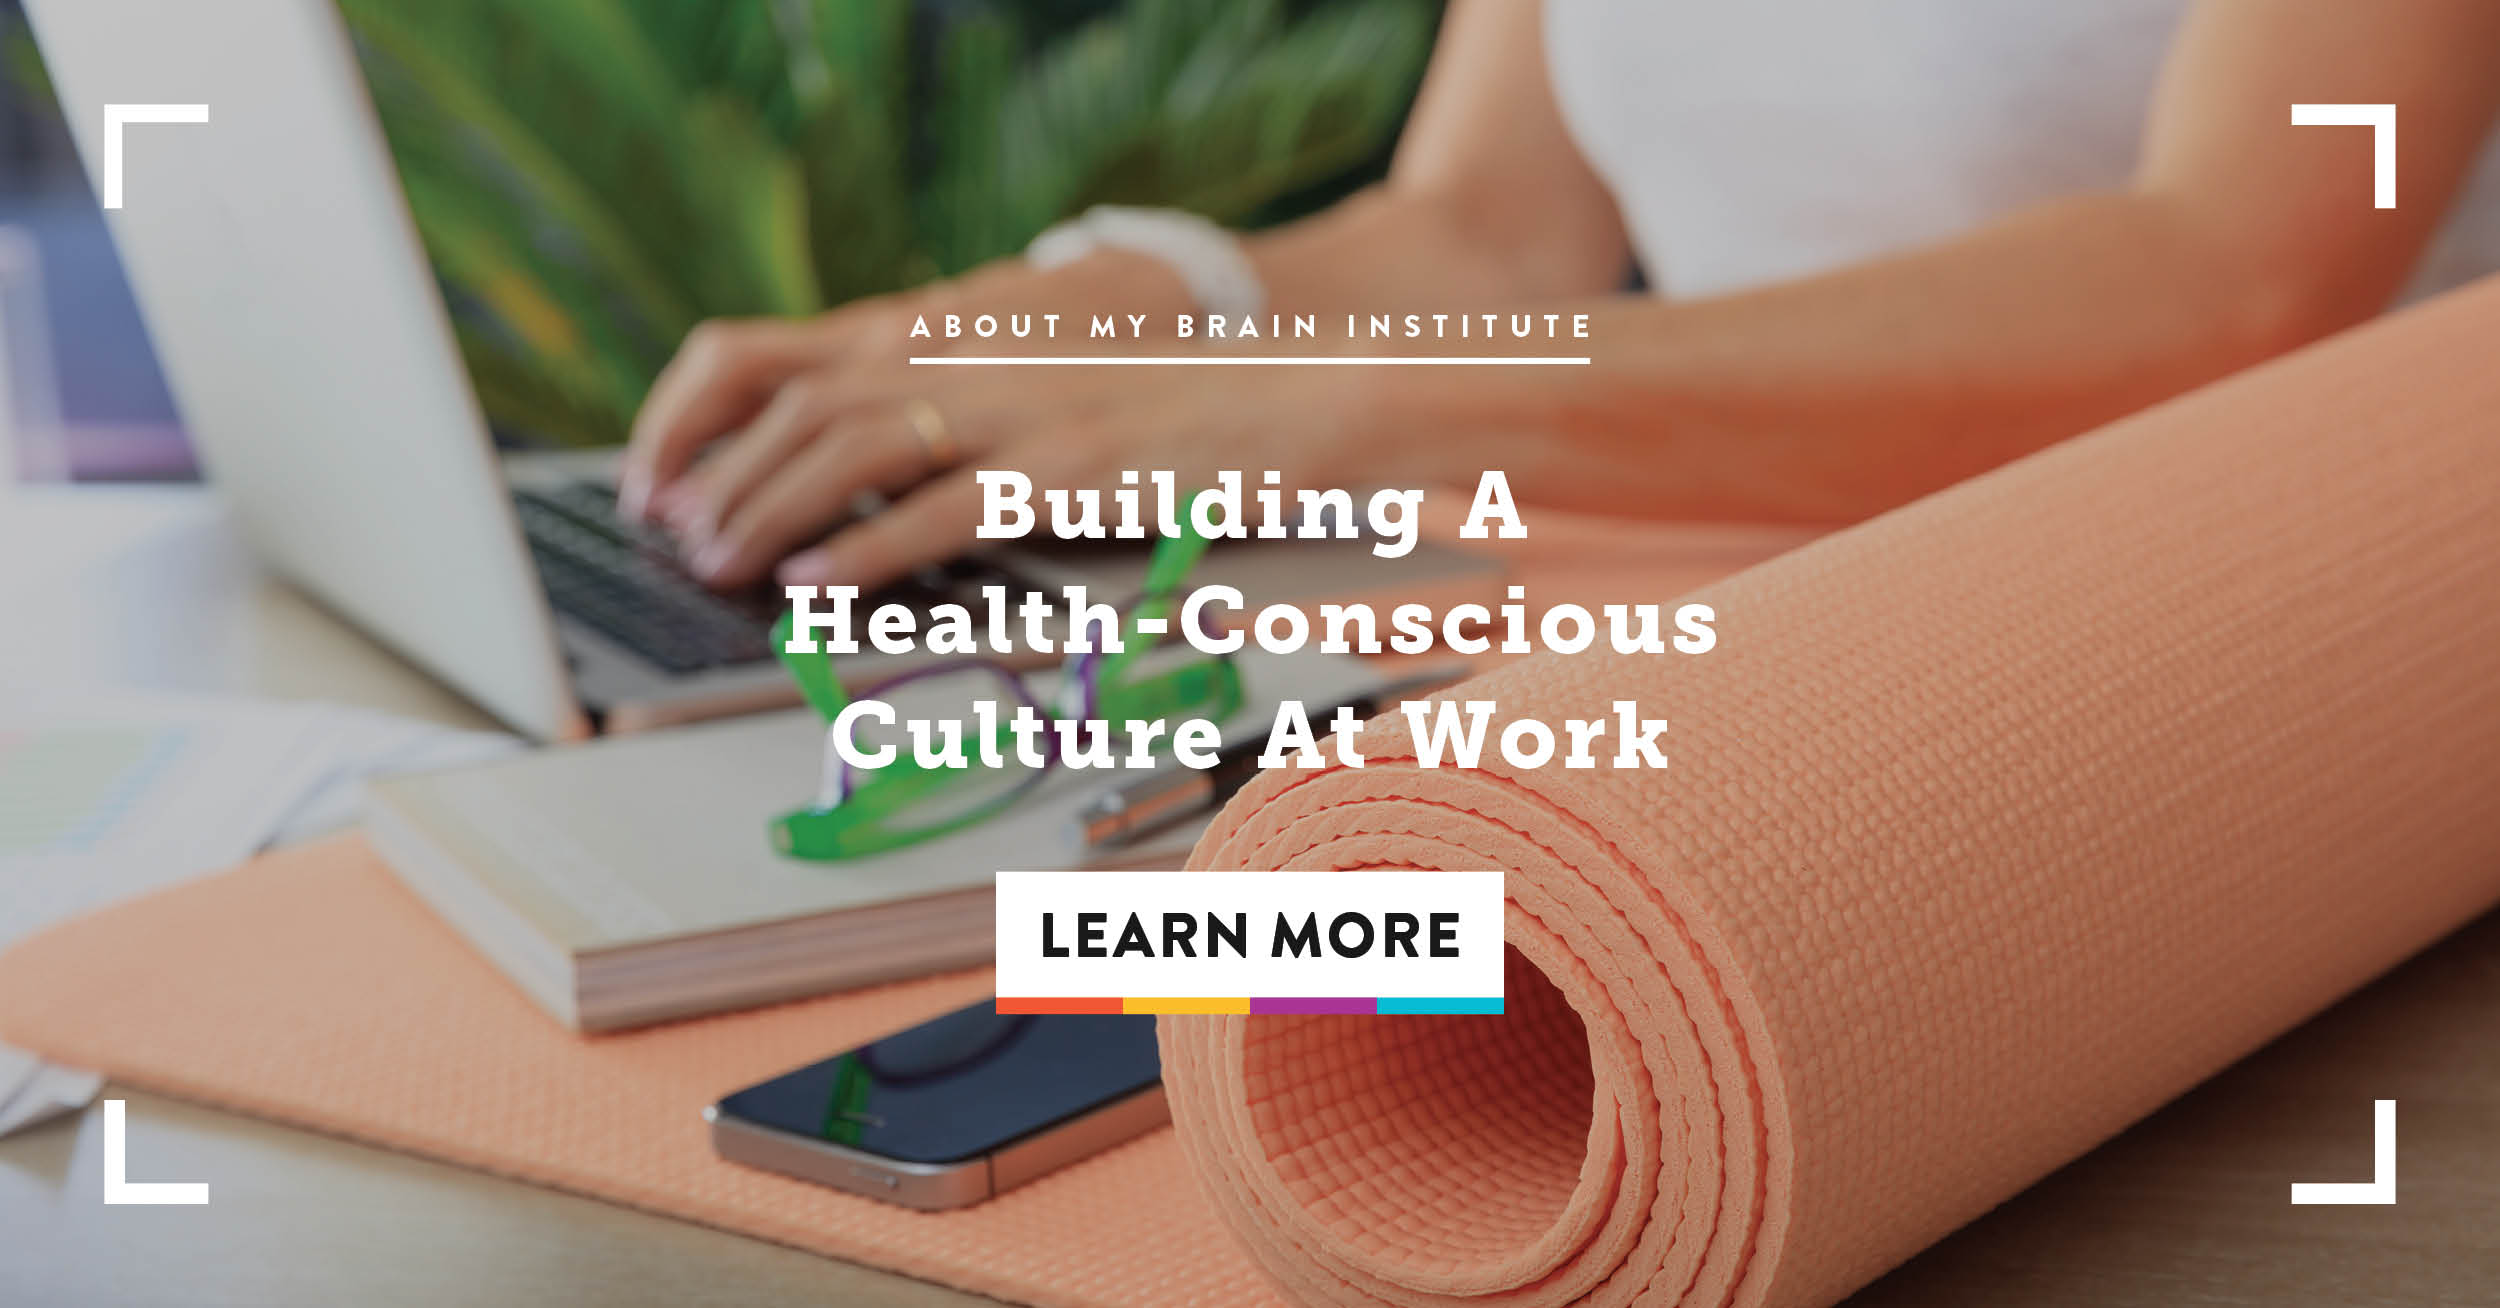 Building A Health-Conscious Culture At Work